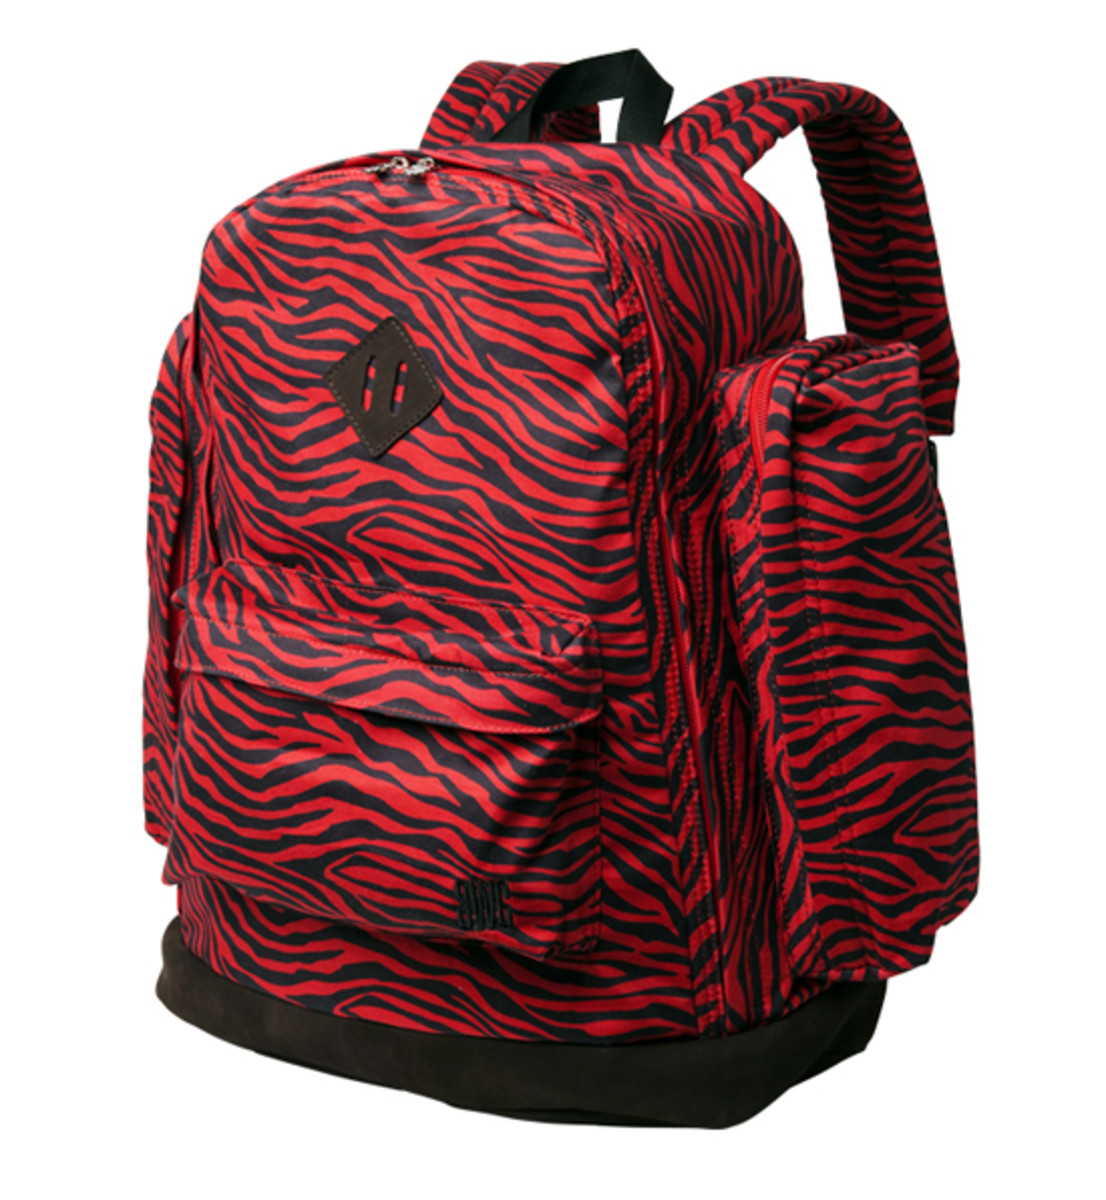 zebra-day-bag